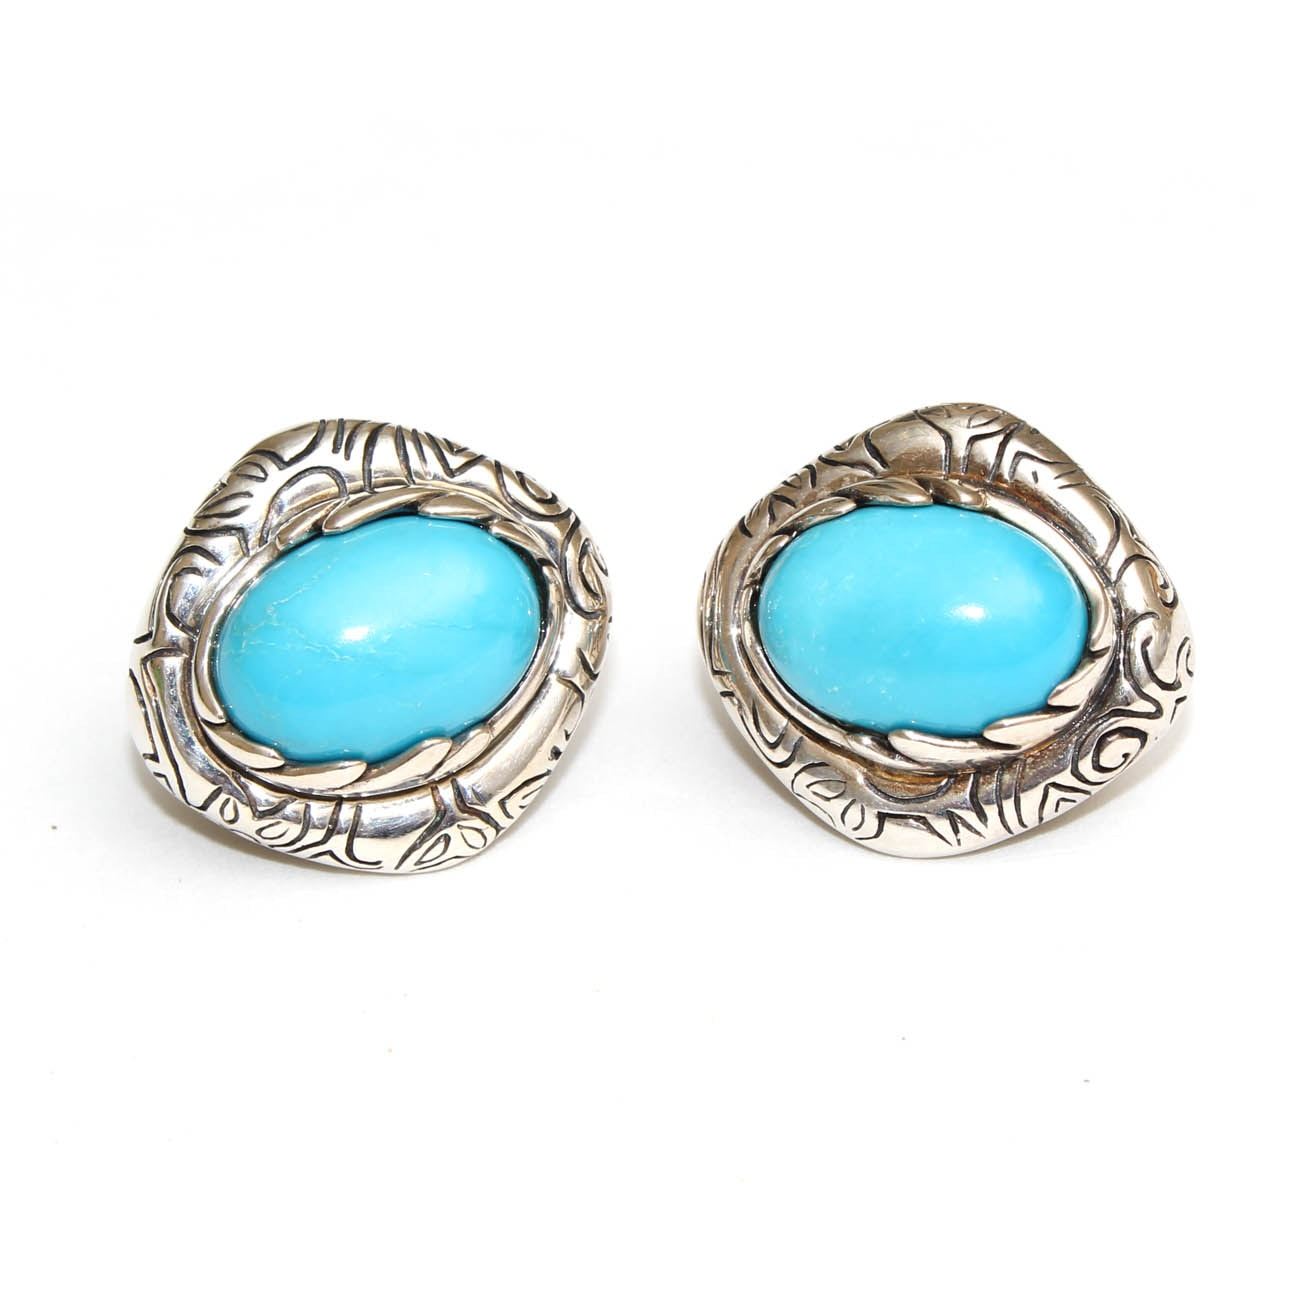 Jean Lin Sterling Silver and Turquoise Omega Earrings